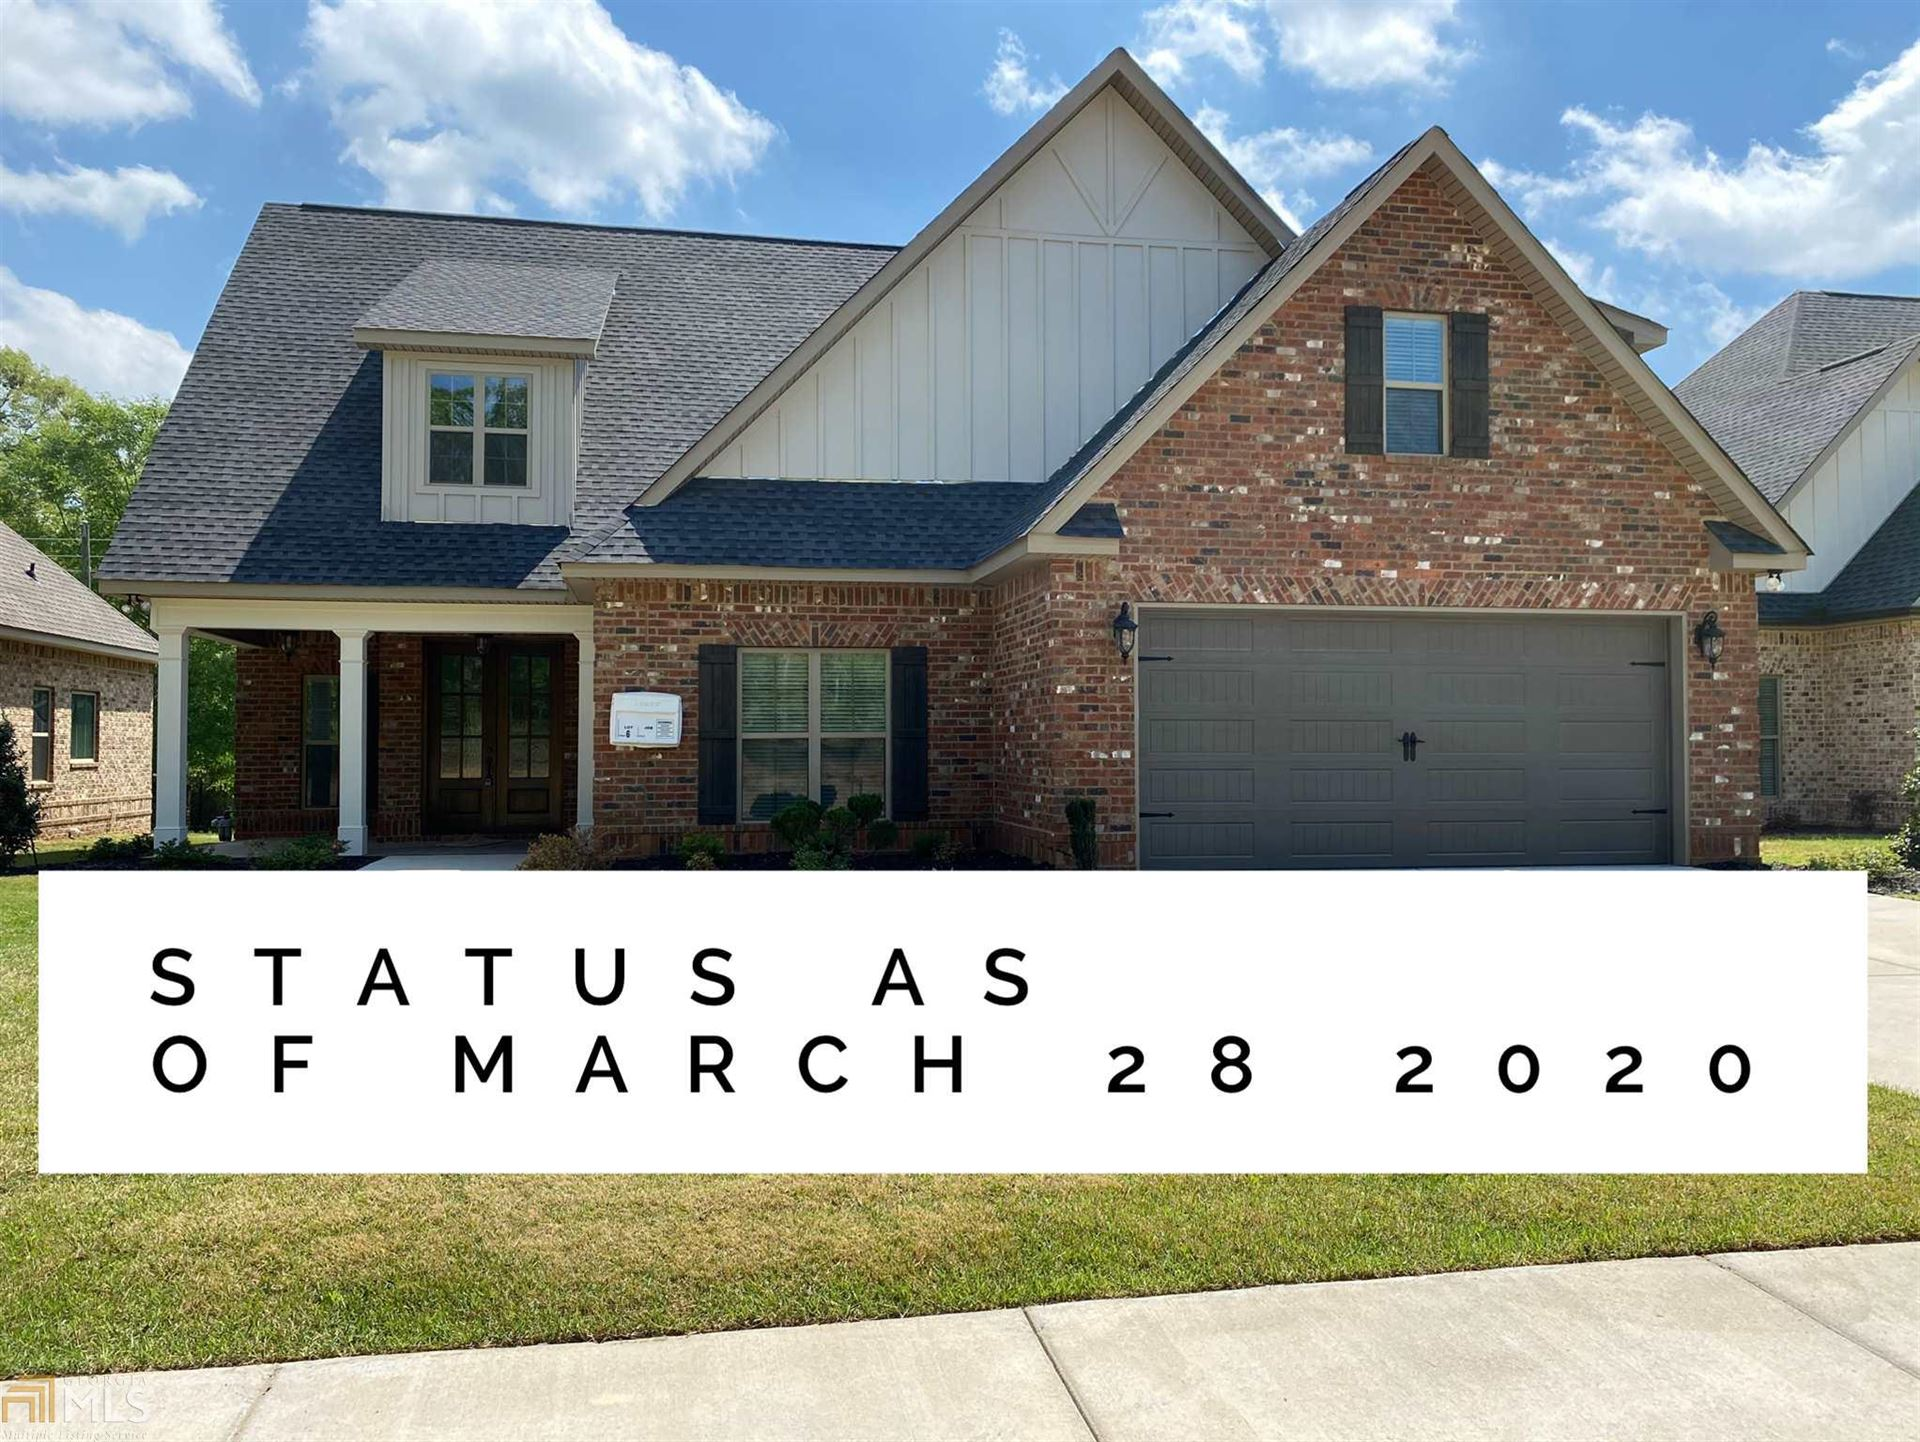 206 Landings Pointe Ln, Warner Robins, GA 31088 - #: 8555440